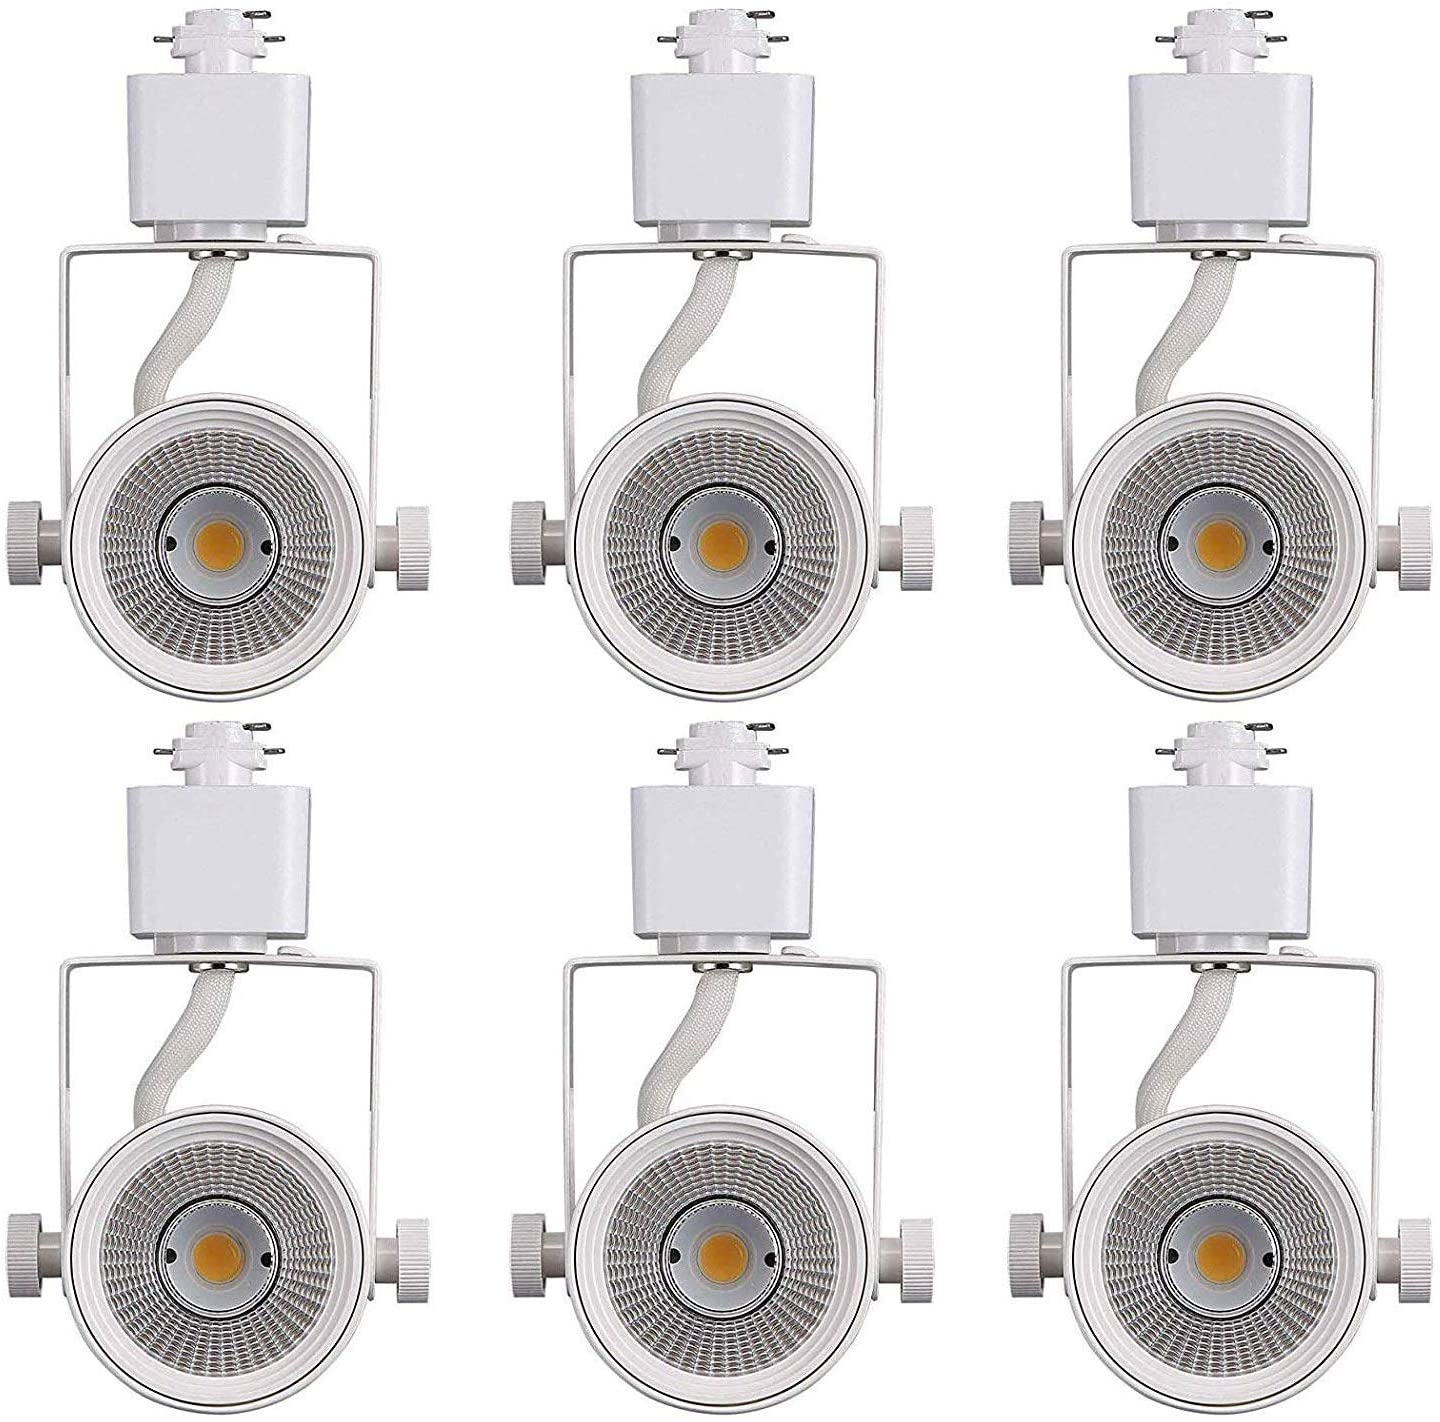 Cloudy Bay 8W 4000K Cool White Dimmable LED Track Light Head,CRI90+ True Color Rendering Adjustable Tilt Angle Track Lighting Fixture,40° Angle for Accent Retail,White Finish,Halo Type- Pack of 6